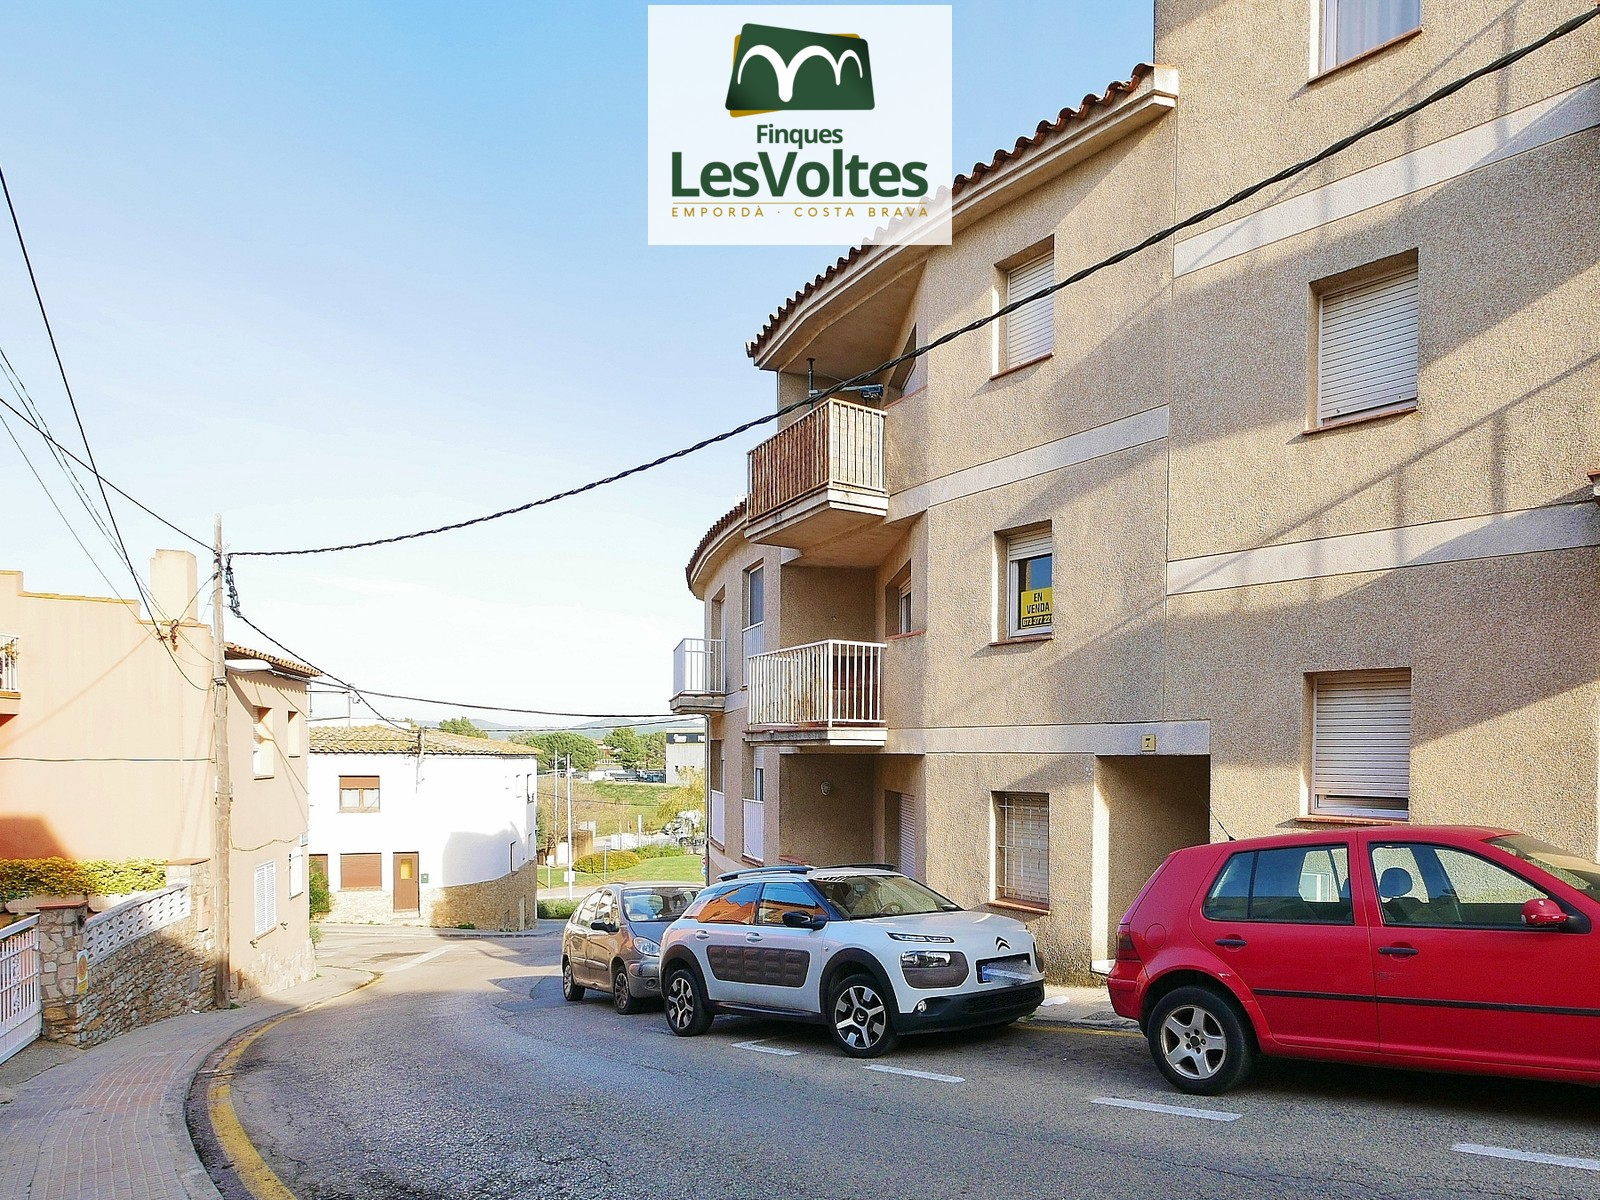 3-bedroom apartment for sale in a residential and quiet area of Palafrugell. Small community of neighbors.